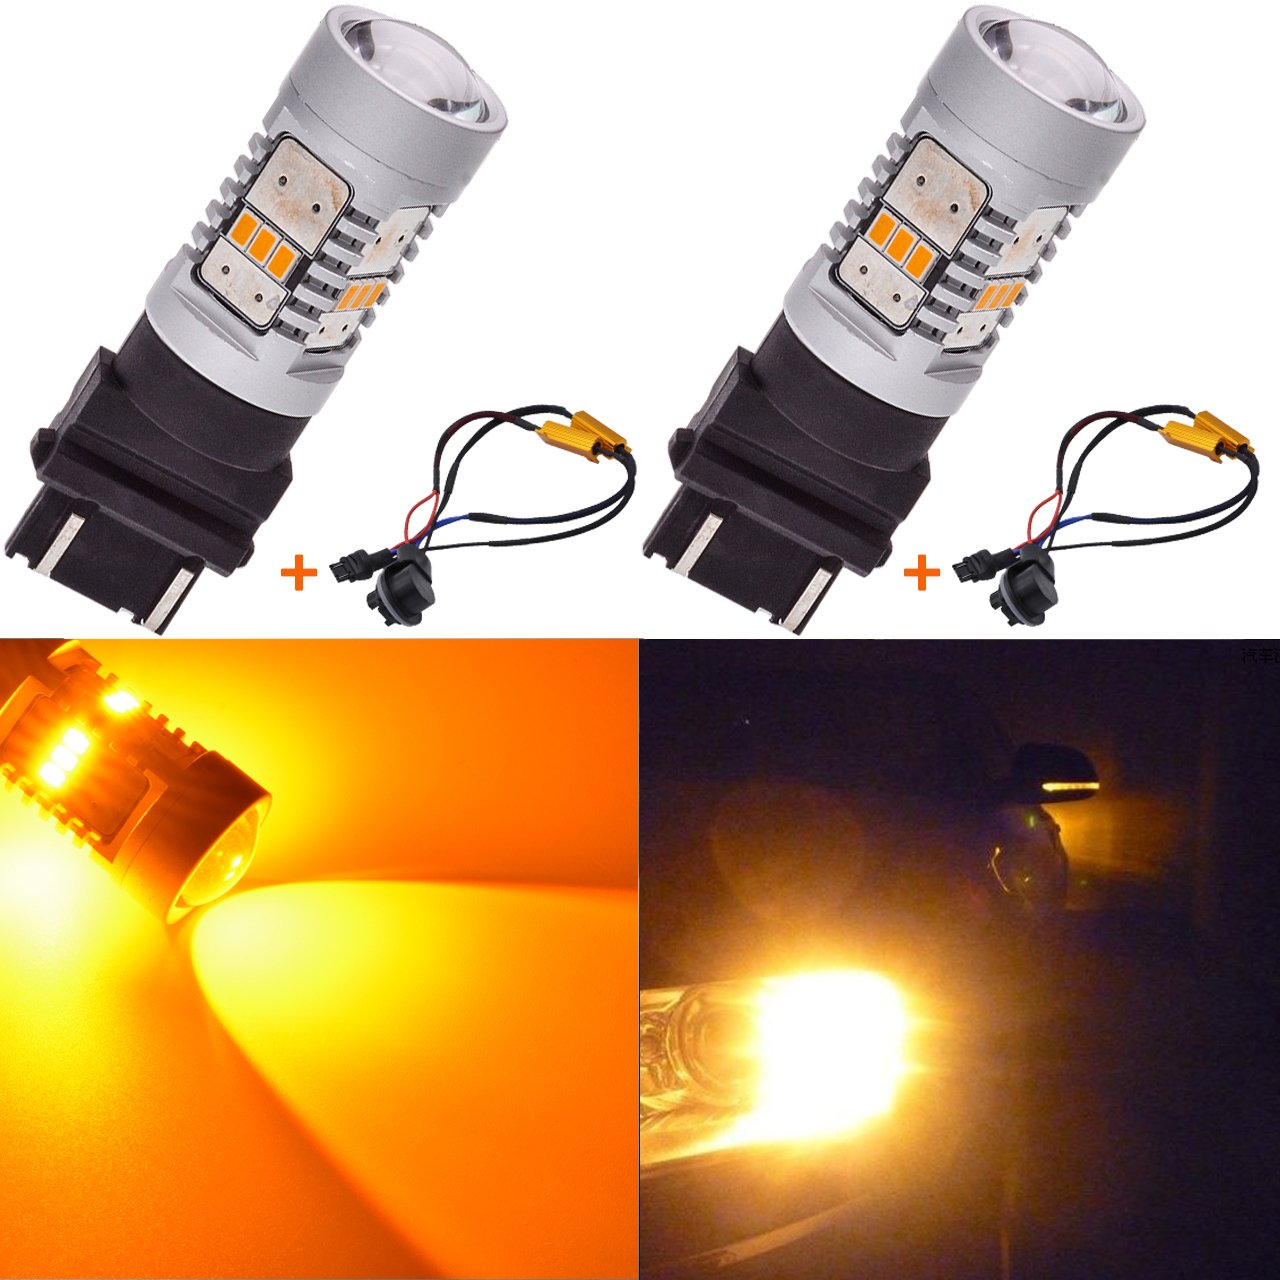 KaTur 1800LM White 1156 BA15S 1141 7506 LED Replacement Bulb 14SMD CREE 3020 RV Camper SUV MPV Car Turn Signal Bulbs Tail Brake Light Lamp Backup Lamps Pack of 2